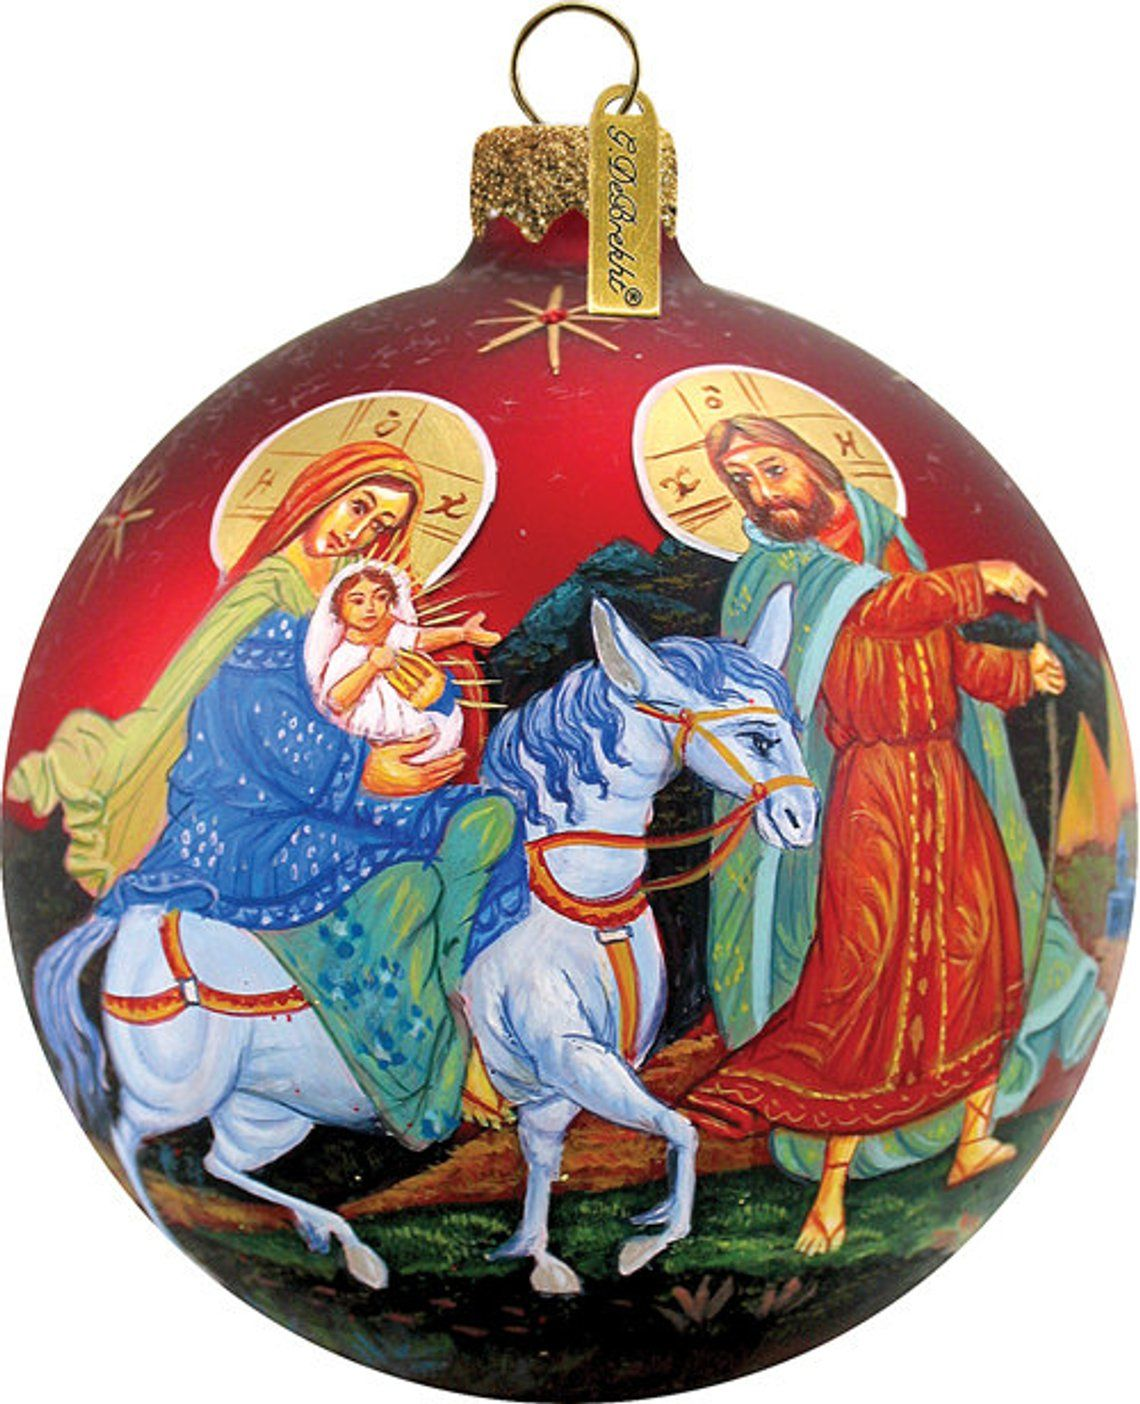 Nativity Ornament Handcrafted Christmas Limited Edition